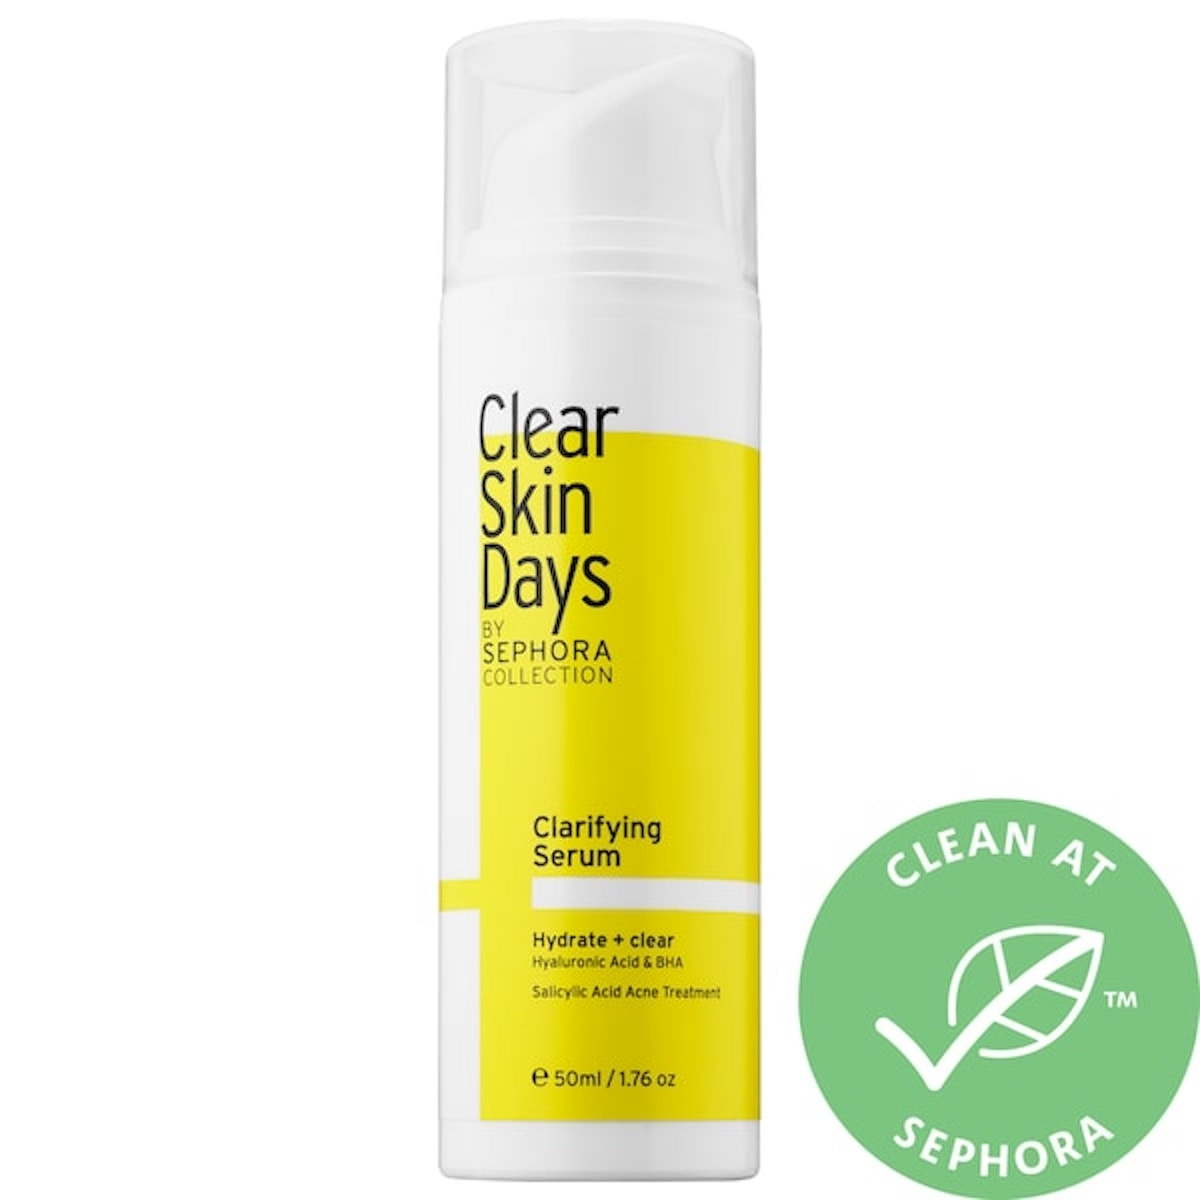 Clear Skin Days Clarifying Serum